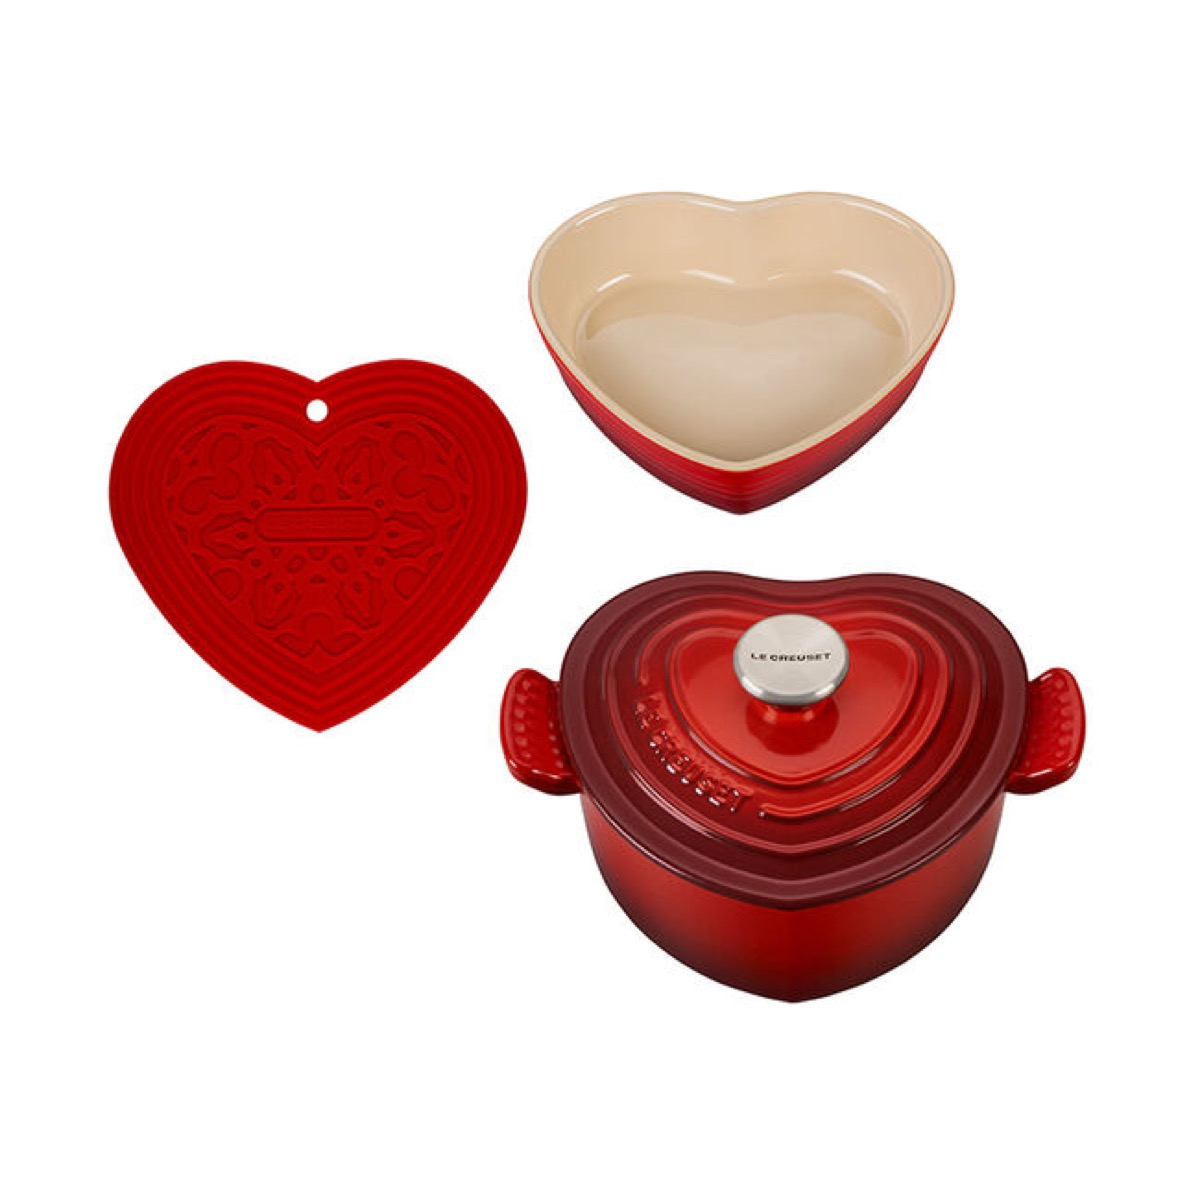 heart shaped dish with lid, heart shaped open dish, and heart shaped trivet in red